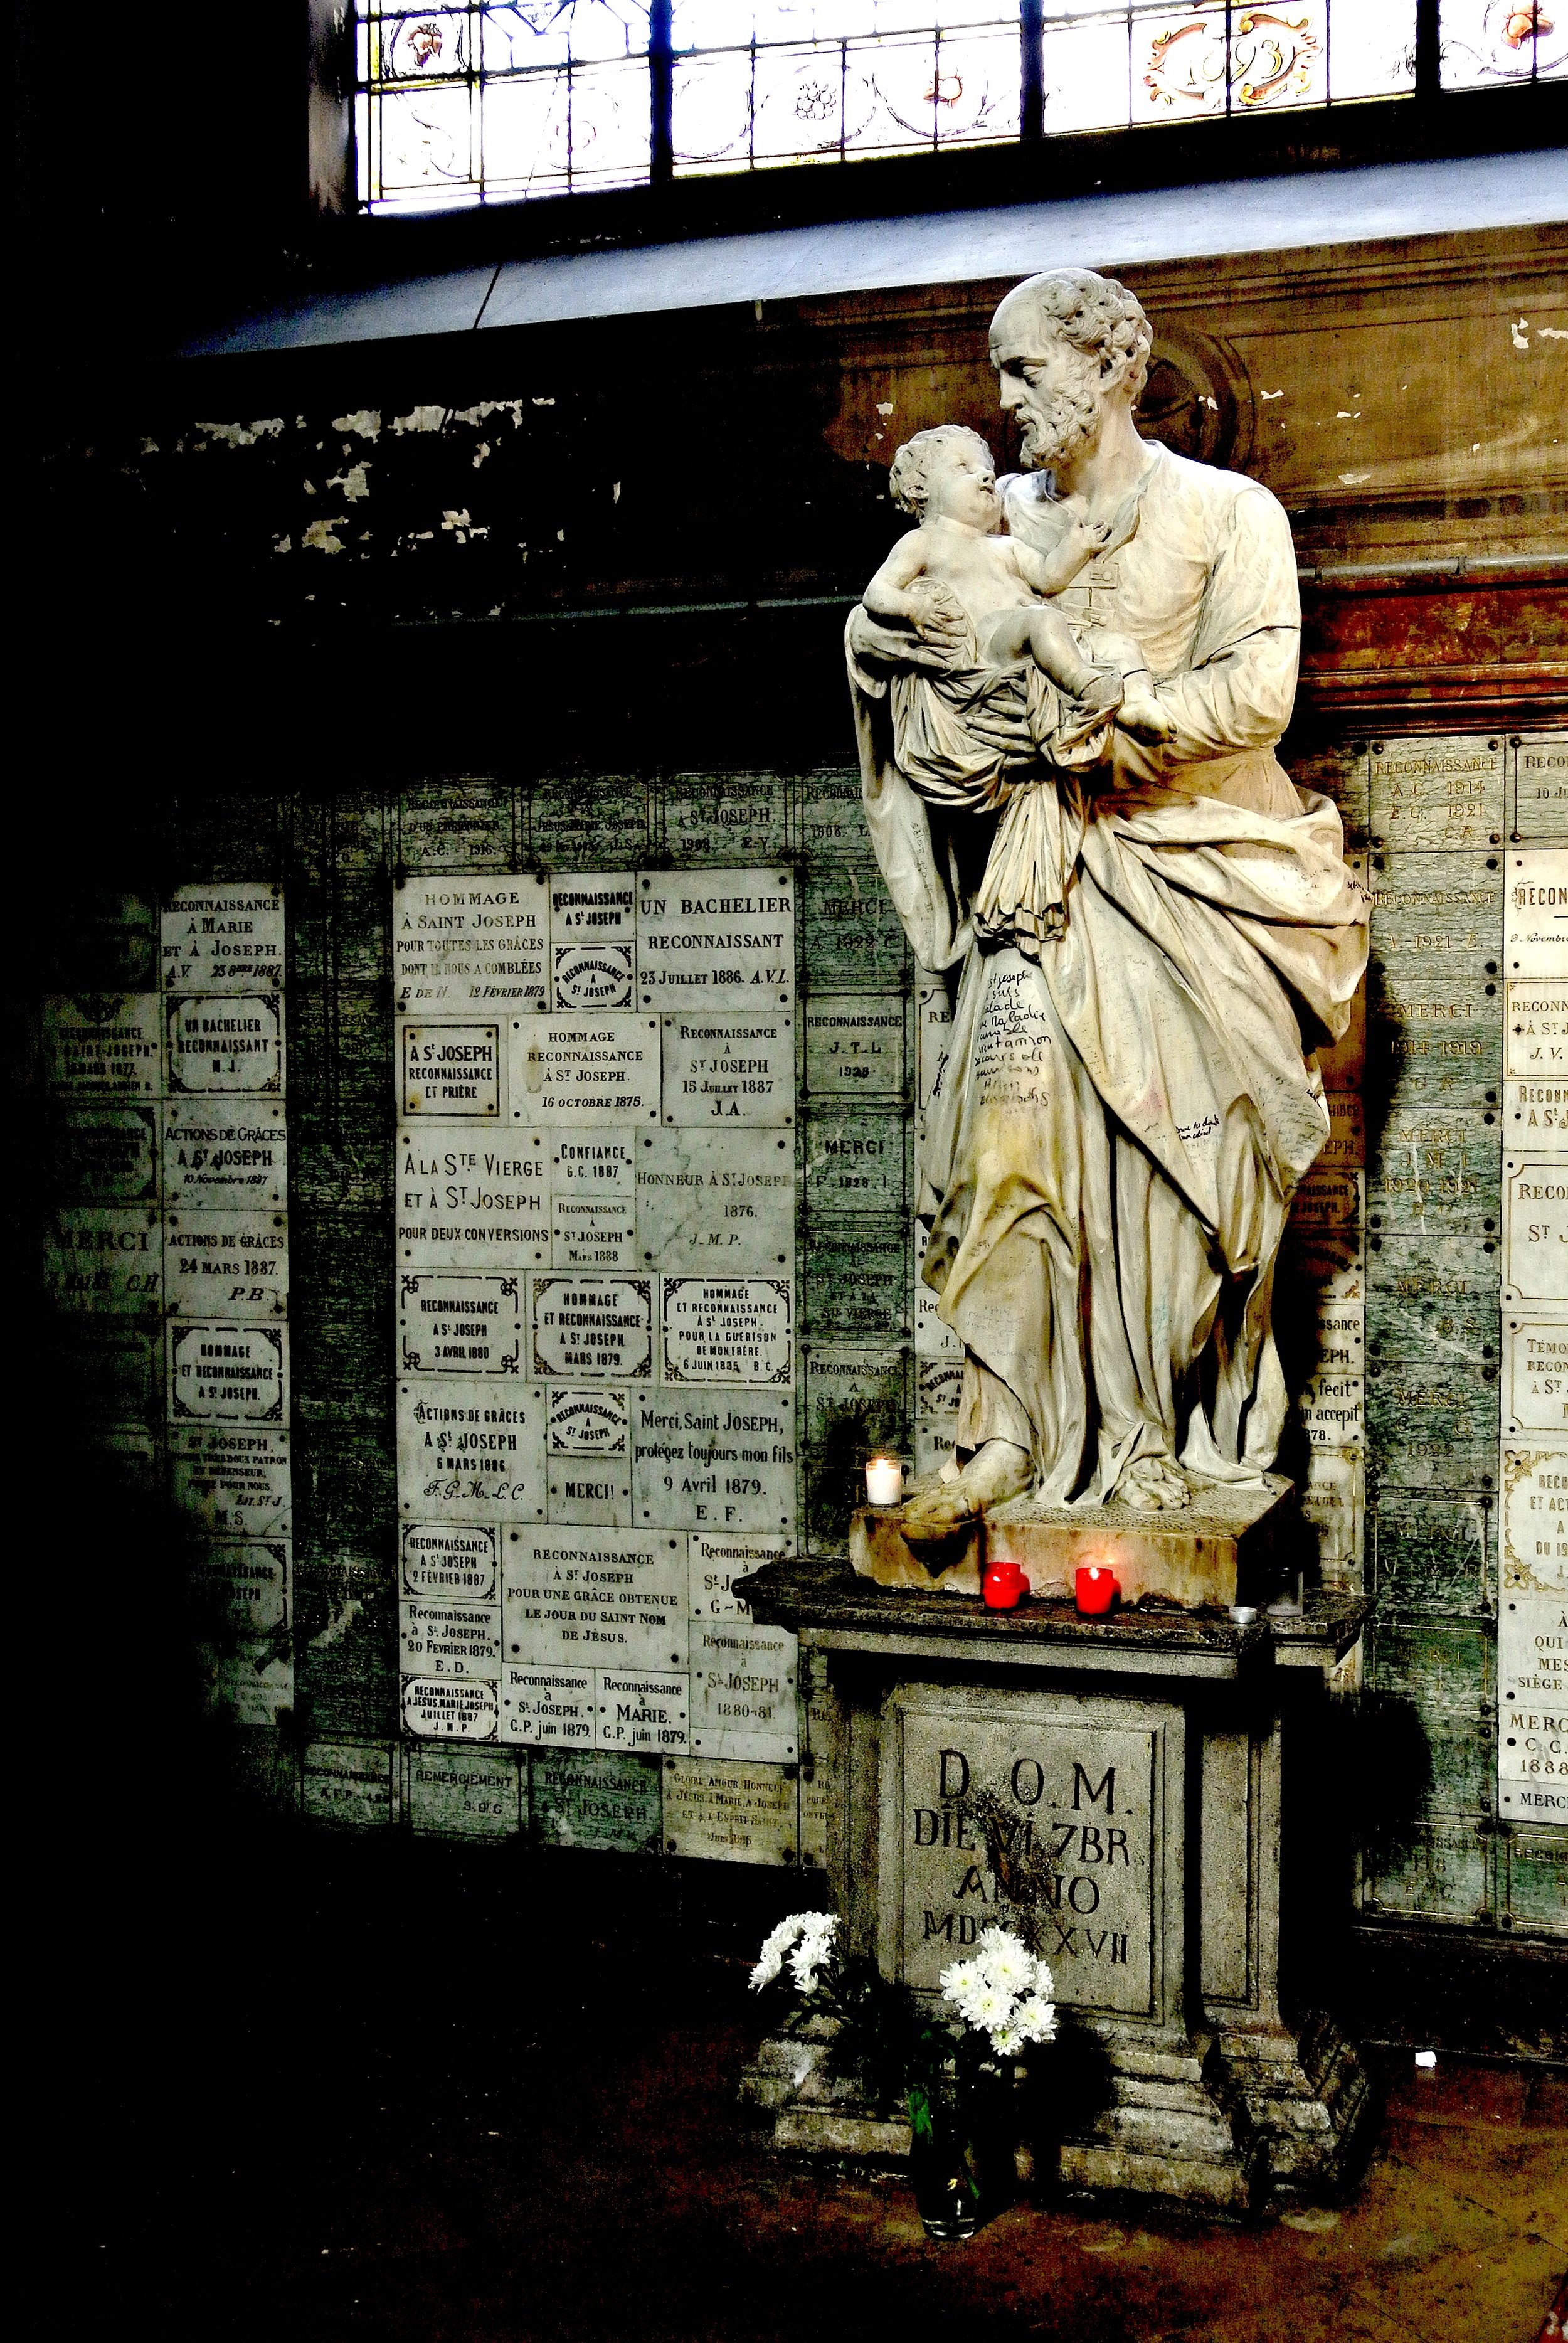 A funerary niche at Saint-Sulpice